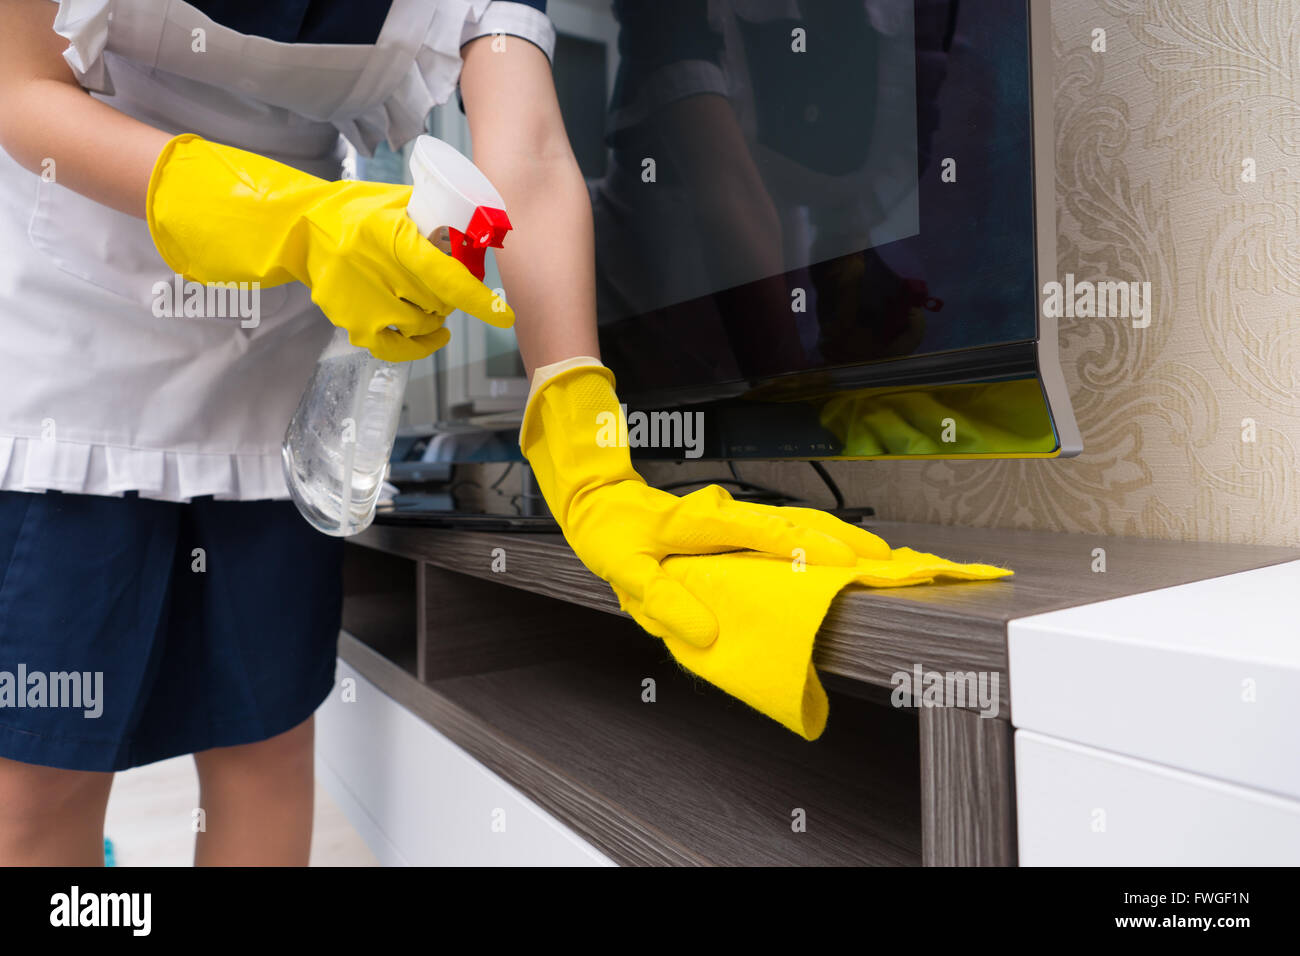 Maid cleaning a television cabinet spraying it with detergent before wiping it with a cloth, close up on her gloved - Stock Image